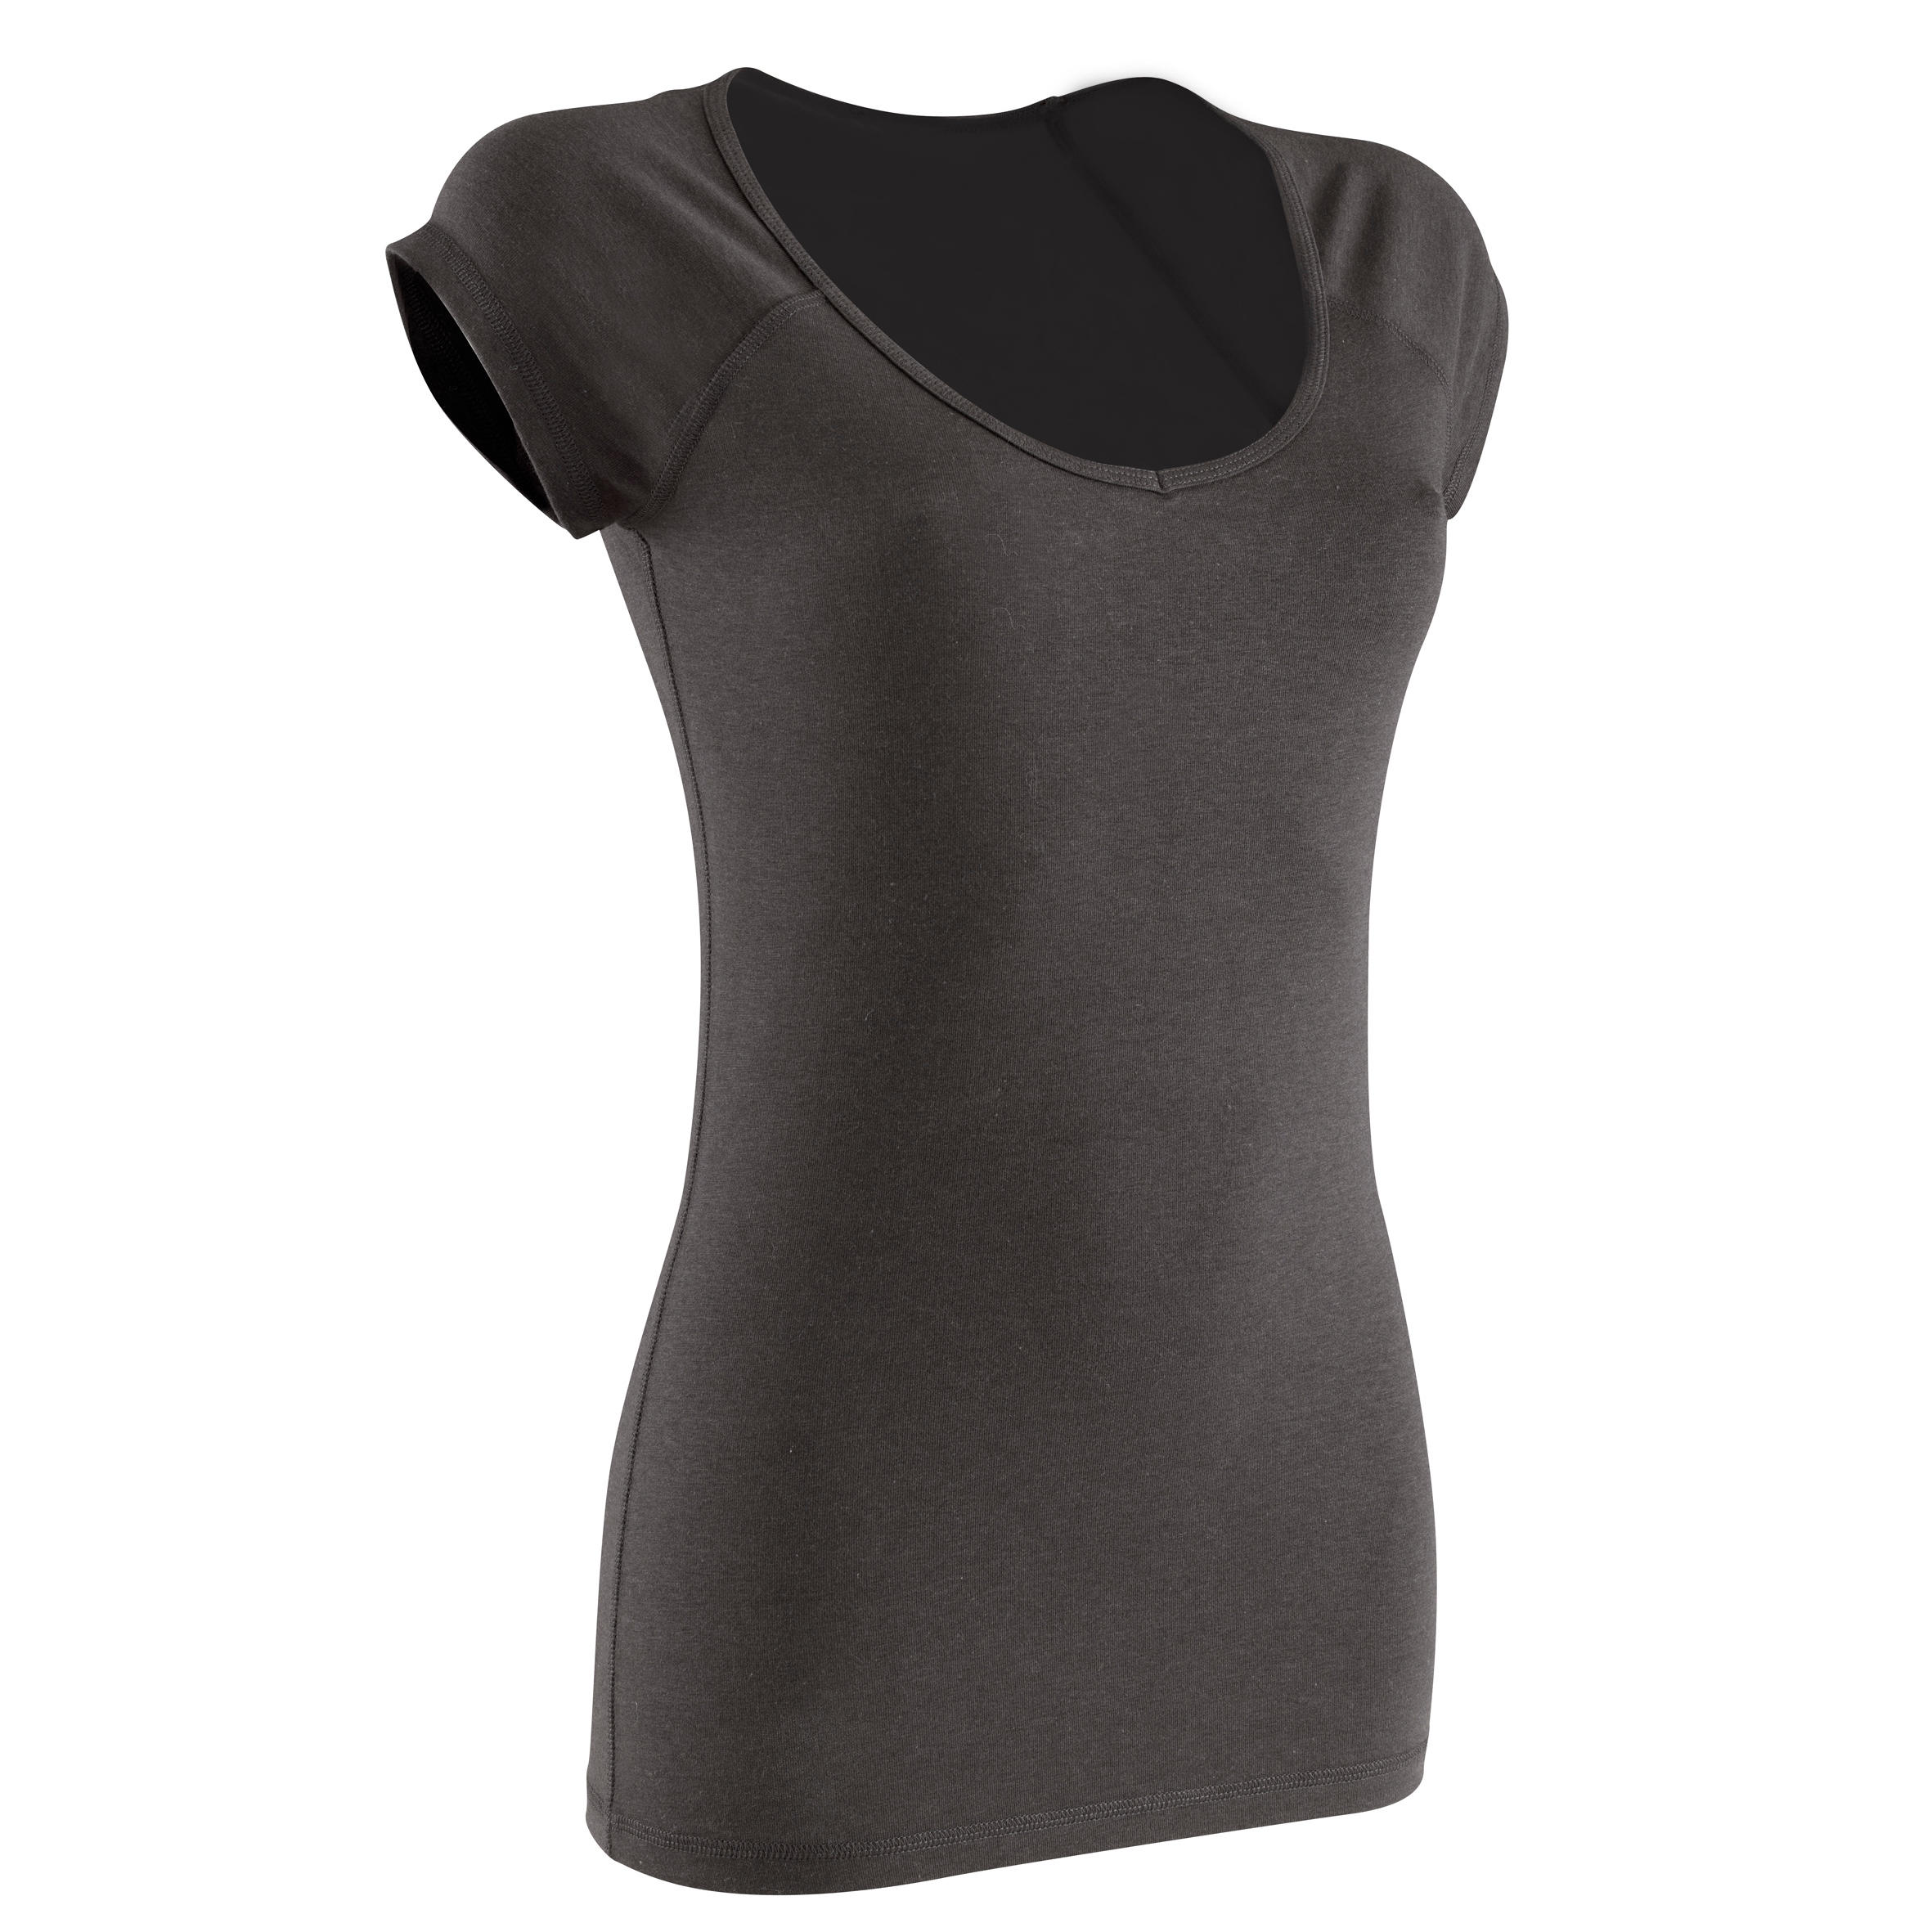 500 Women's Slim-Fit Stretching T-Shirt - Black